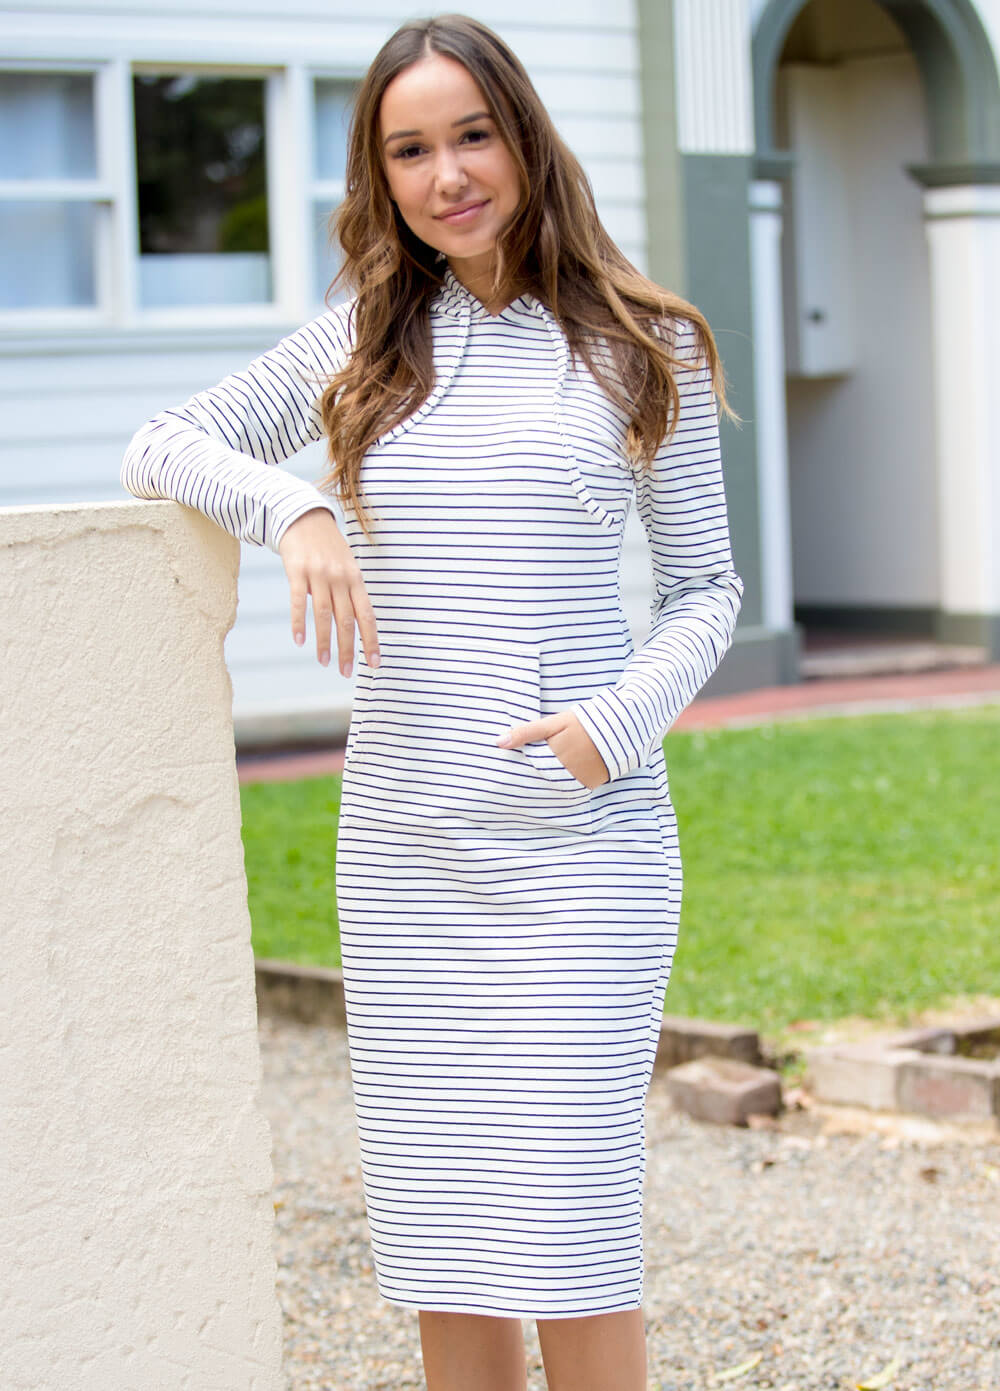 Brittany Hoodie Breastfeeding Dress in Stripes by Lait & Co